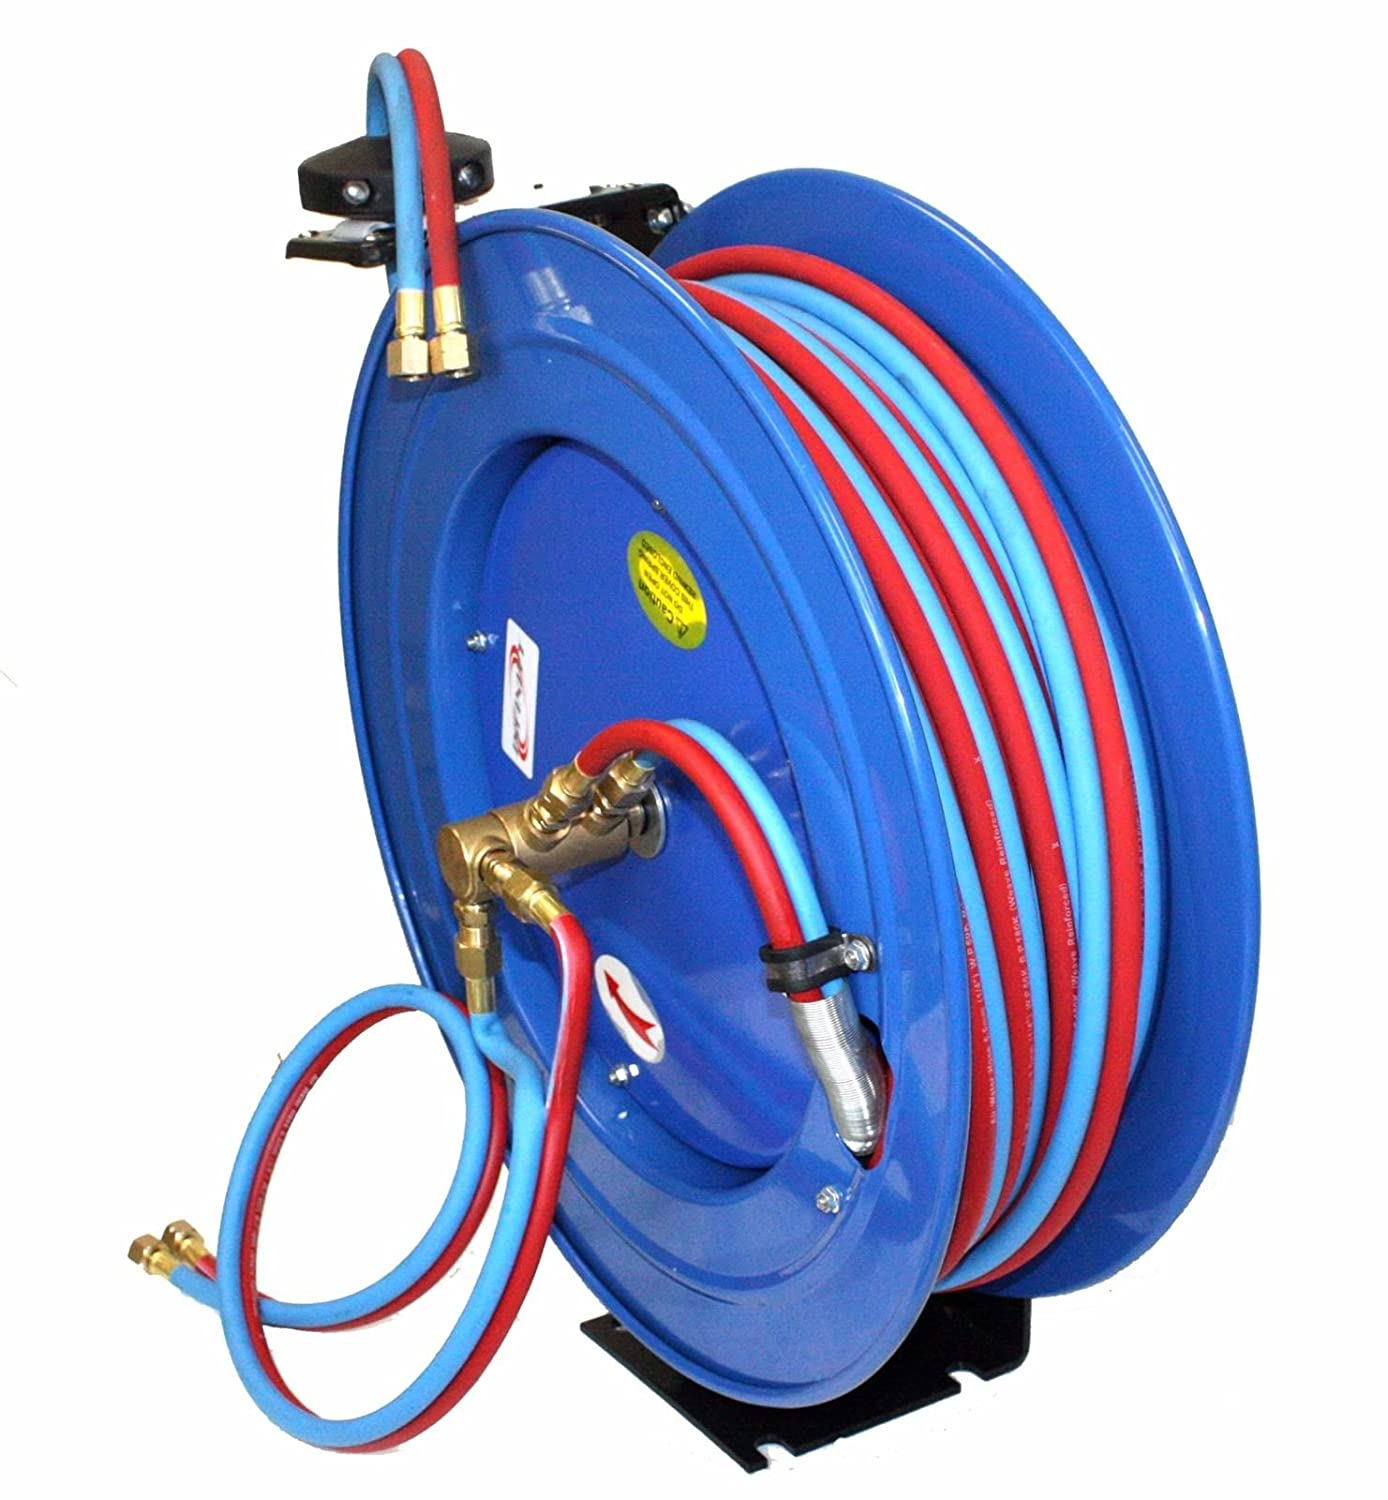 9TRADING Retractable Auto Rewind Welding Hose Reel Wall Ceiling With 100ft Oxygen Acetylene